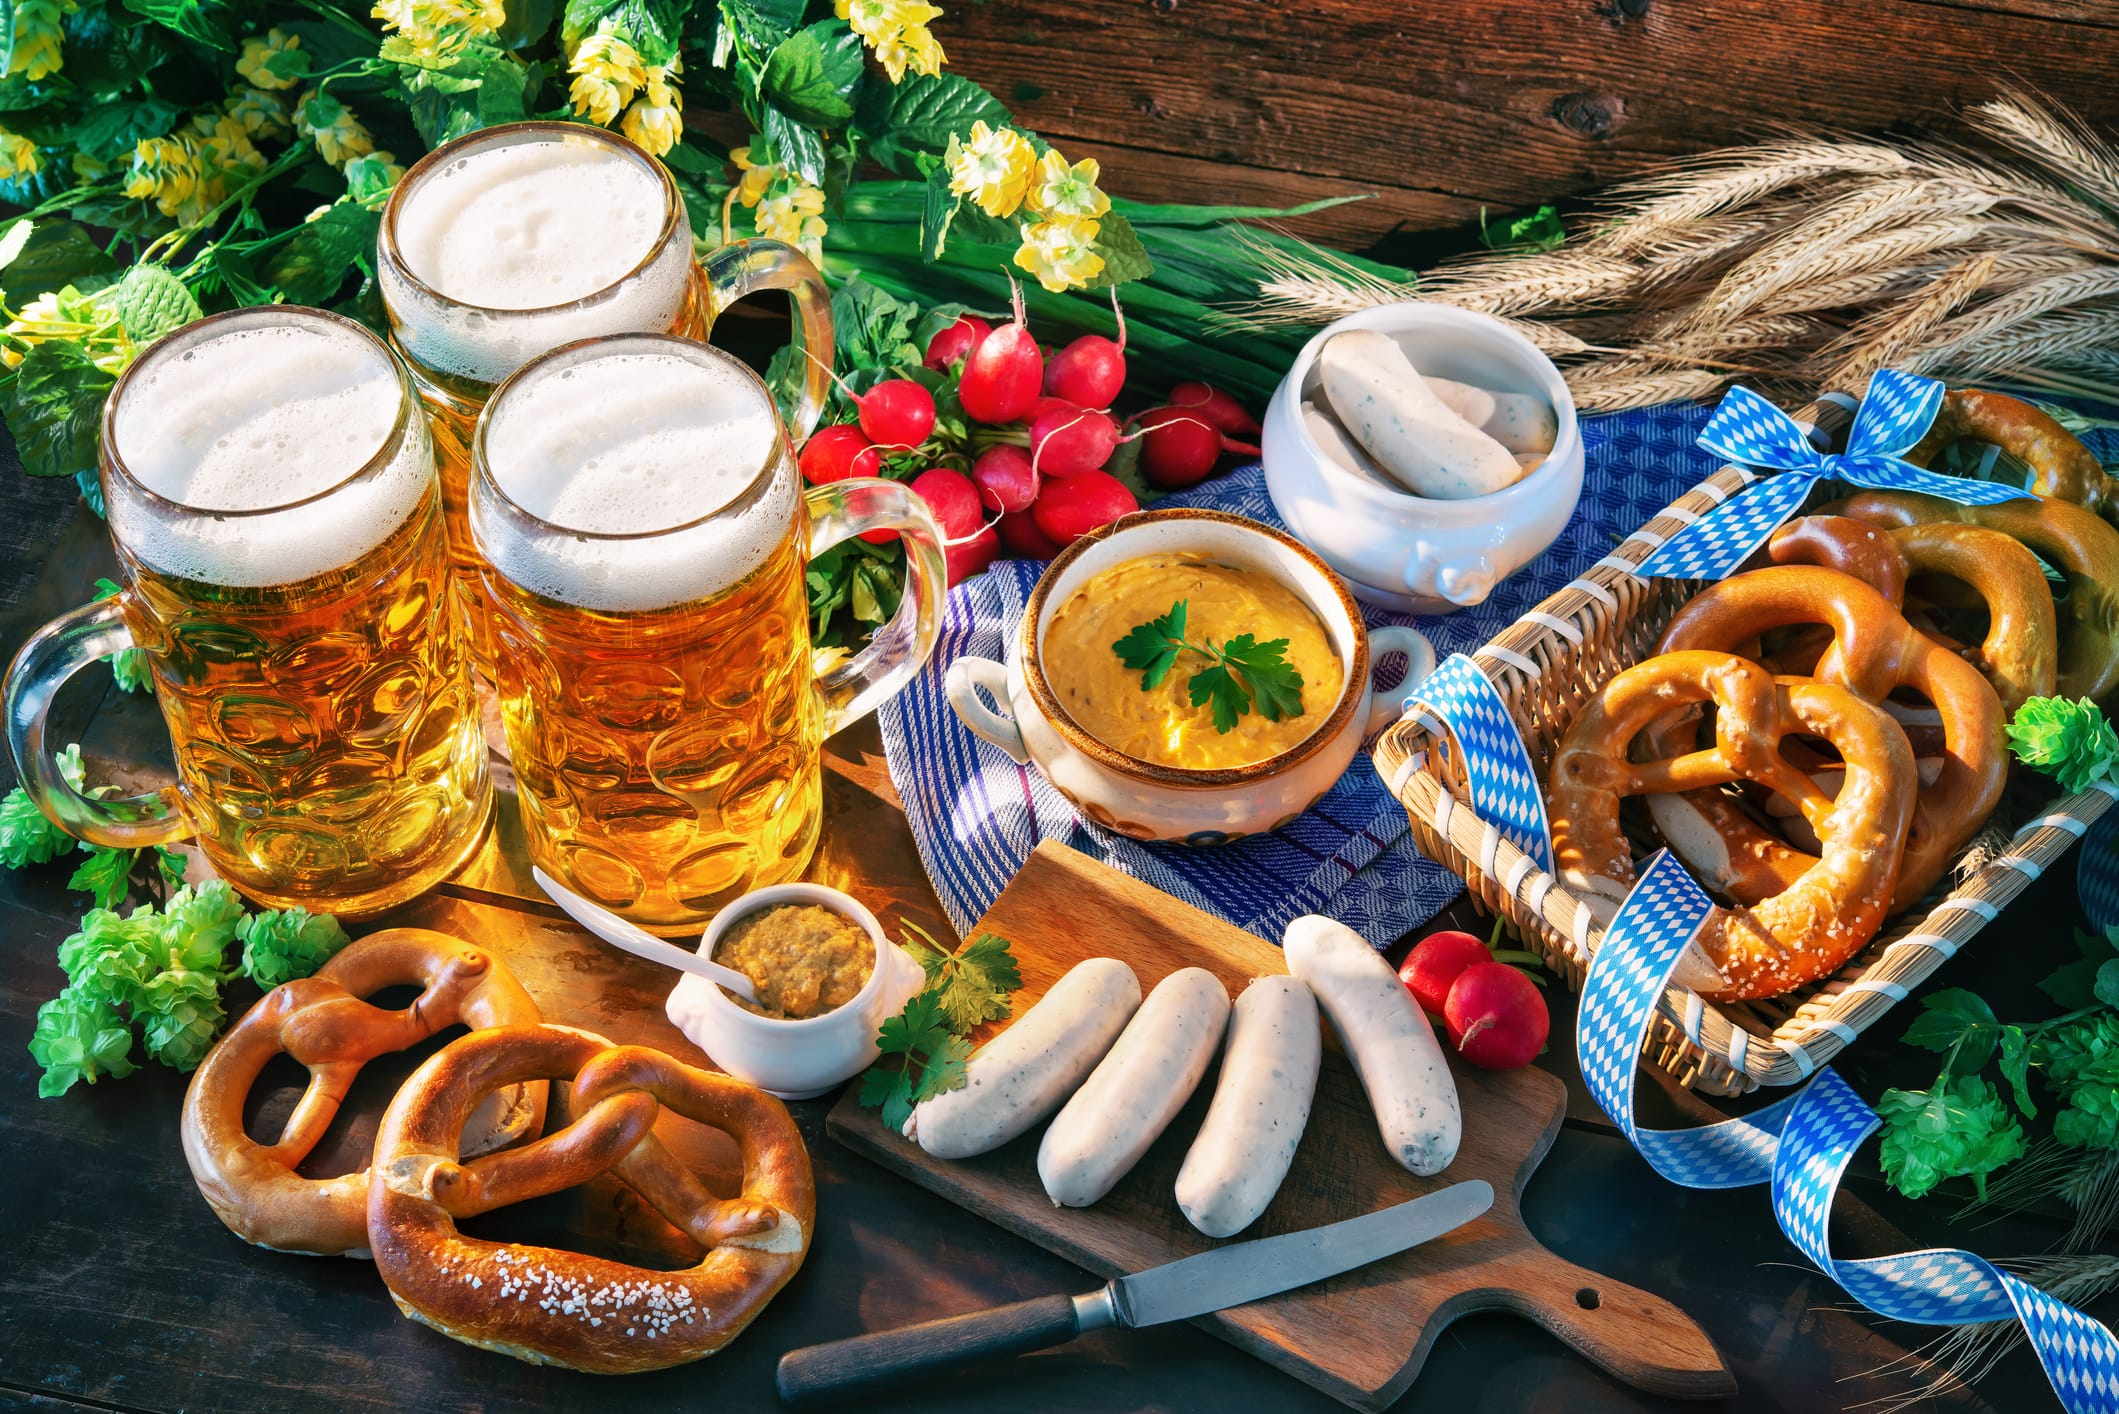 Oktoberfest is truly a big party with a variety of food